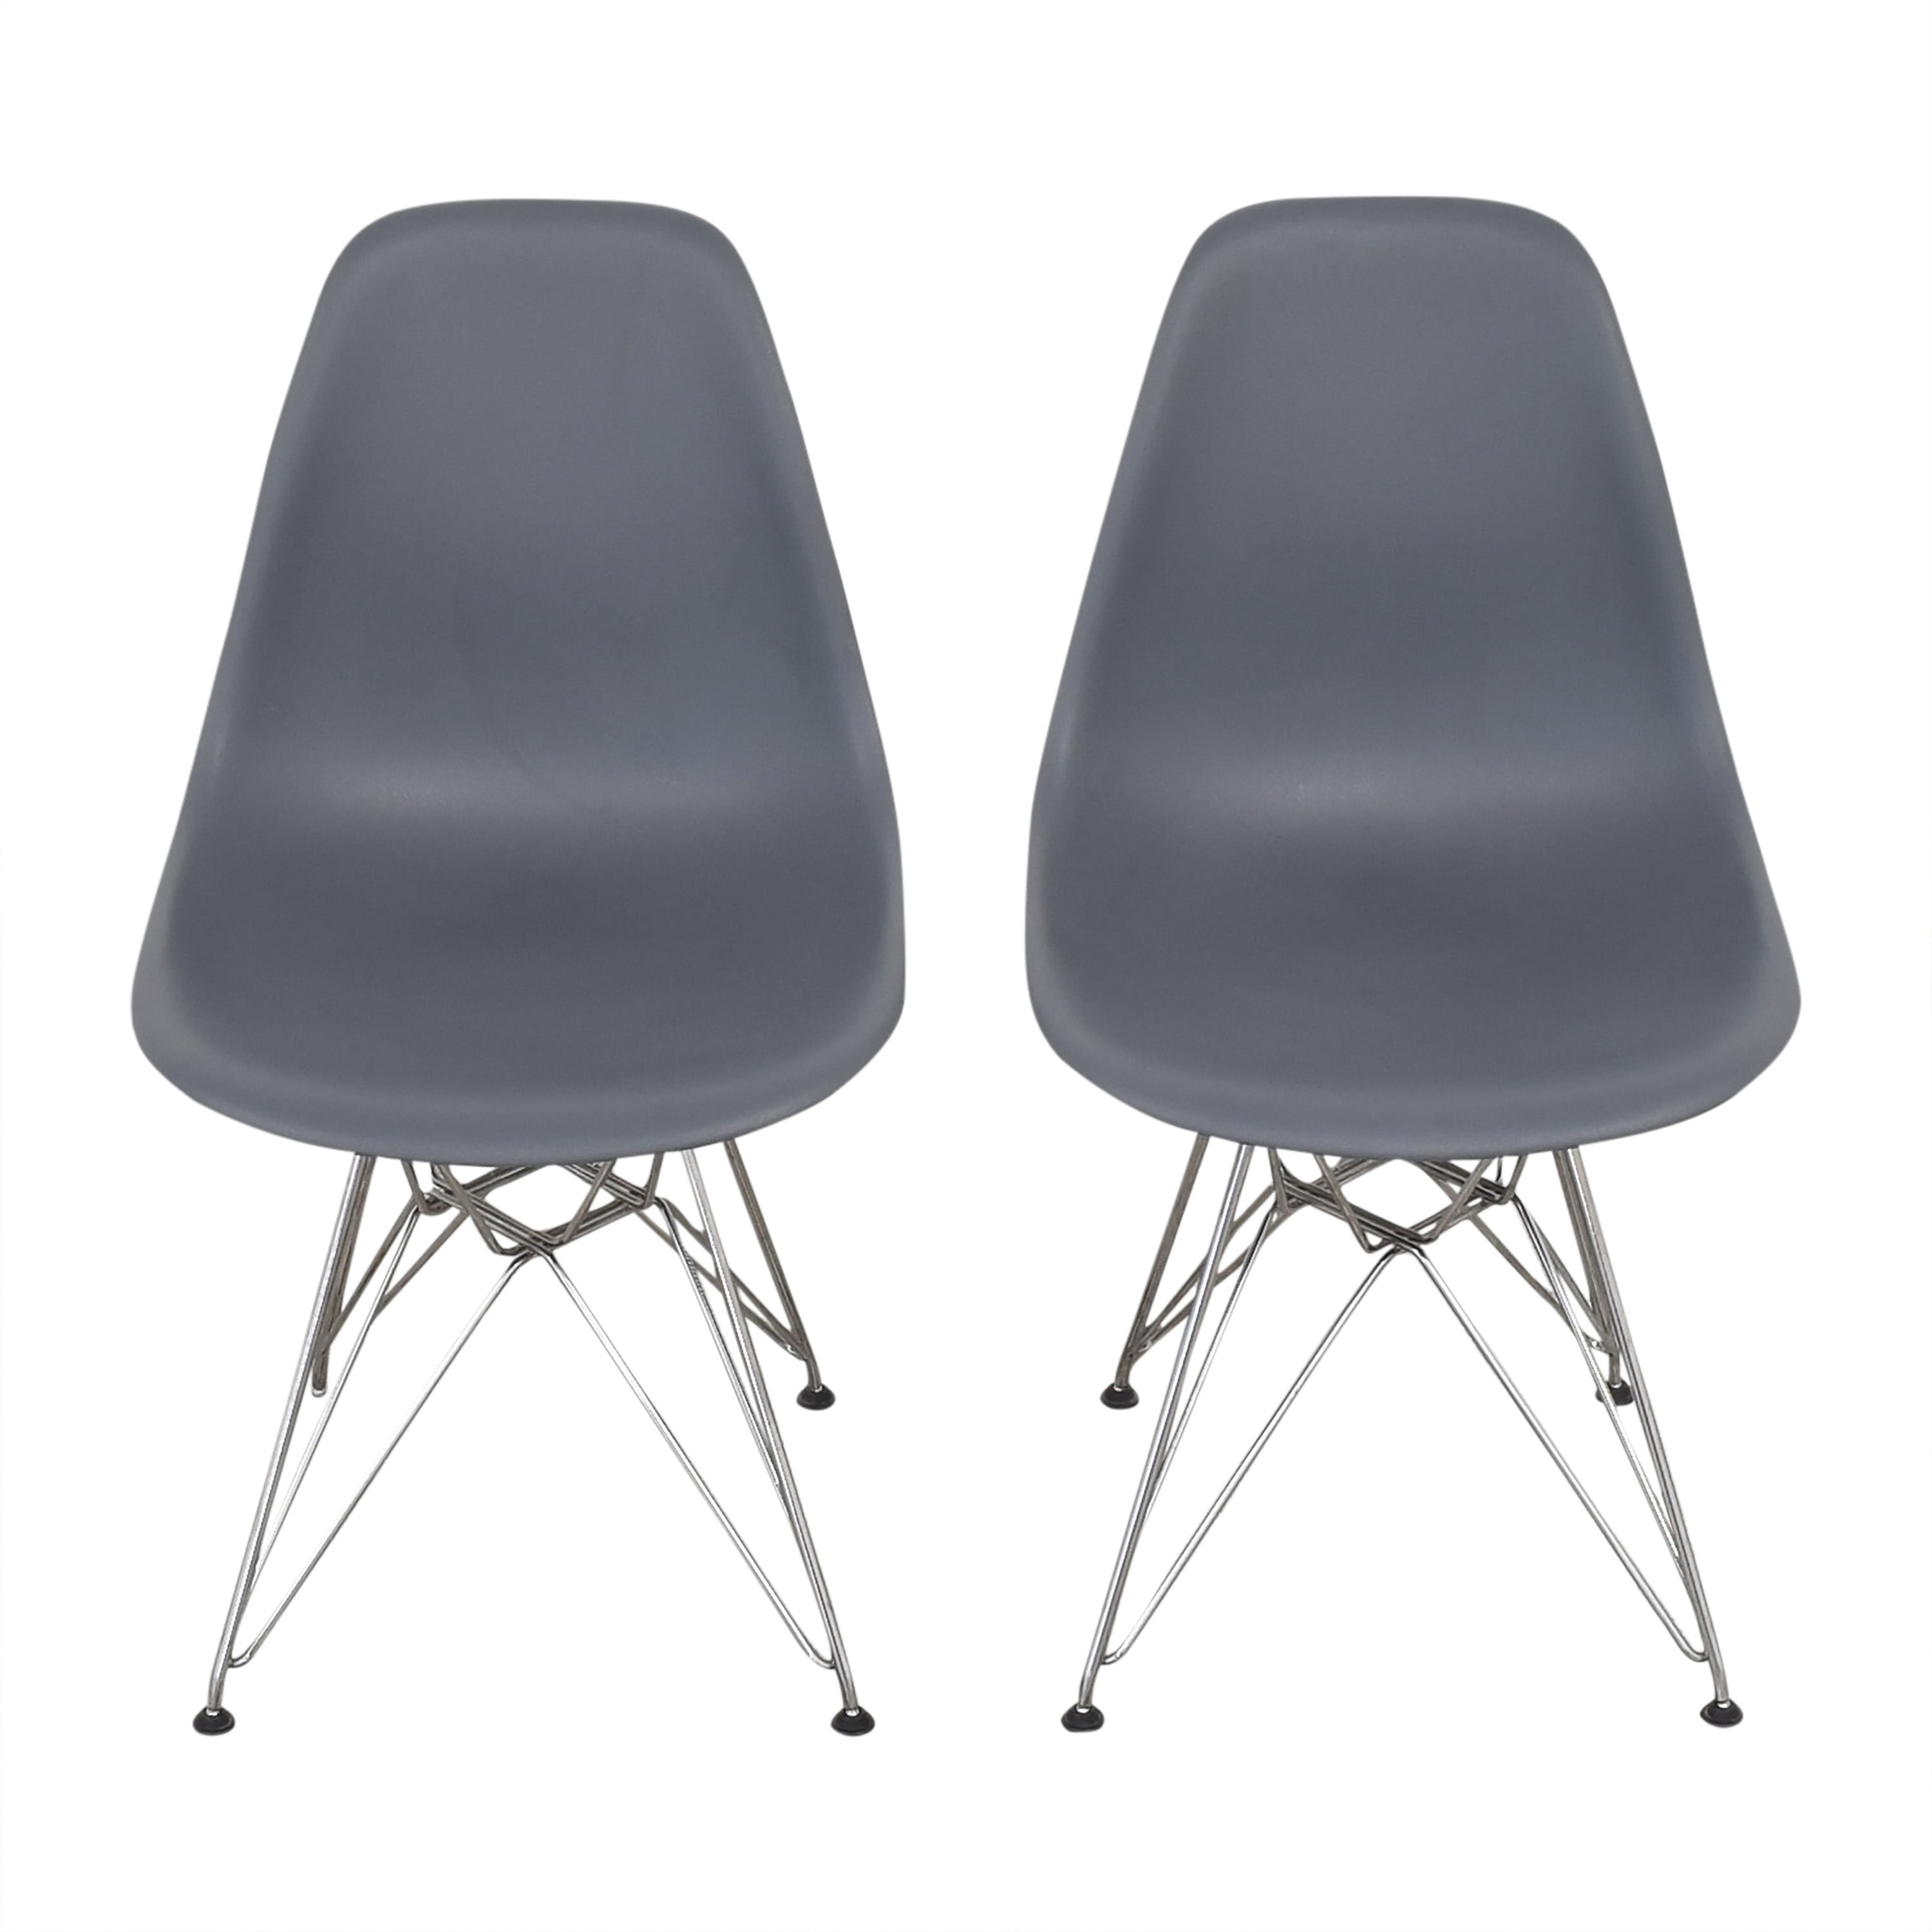 Design Within Reach Design Within Reach Herman Miller Eames Molded Side Chairs gray and silver